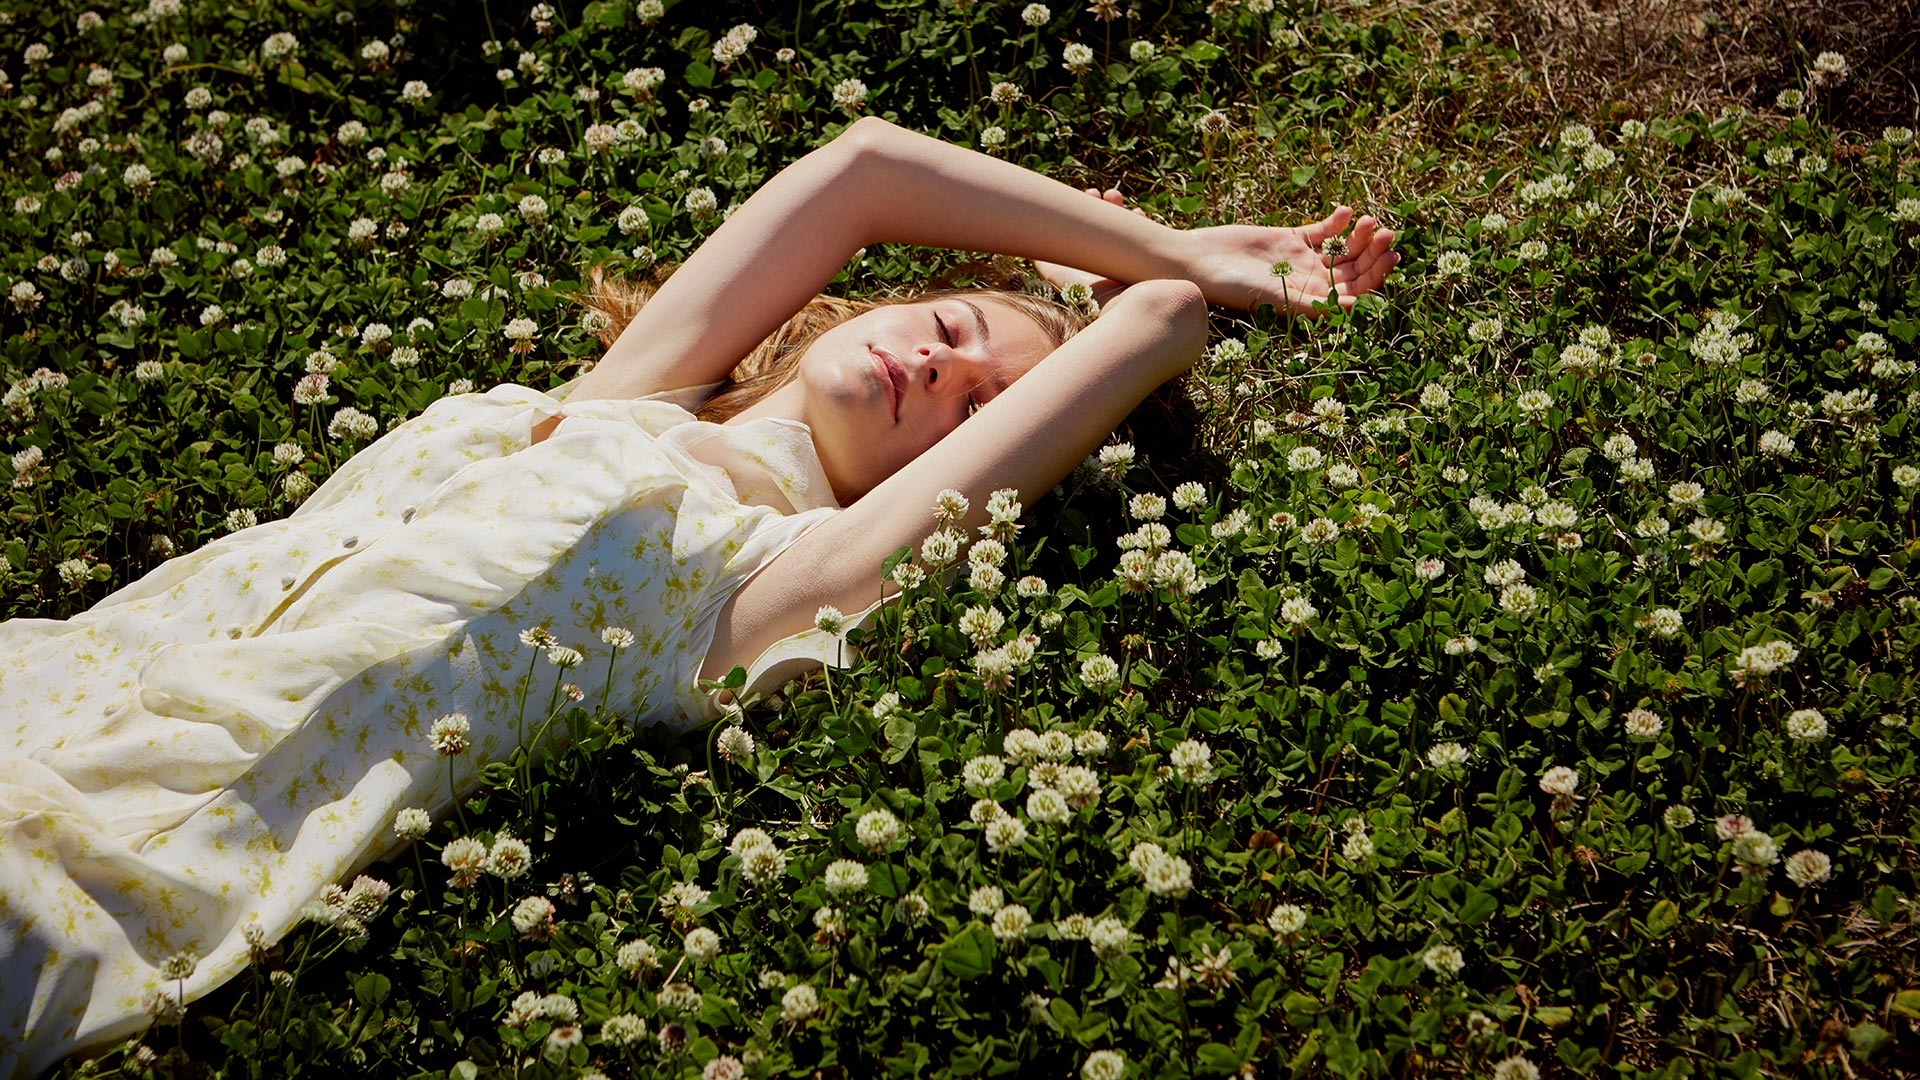 Model laying in field of clover flowers photographed by fashion apparel photographer Kate Benson